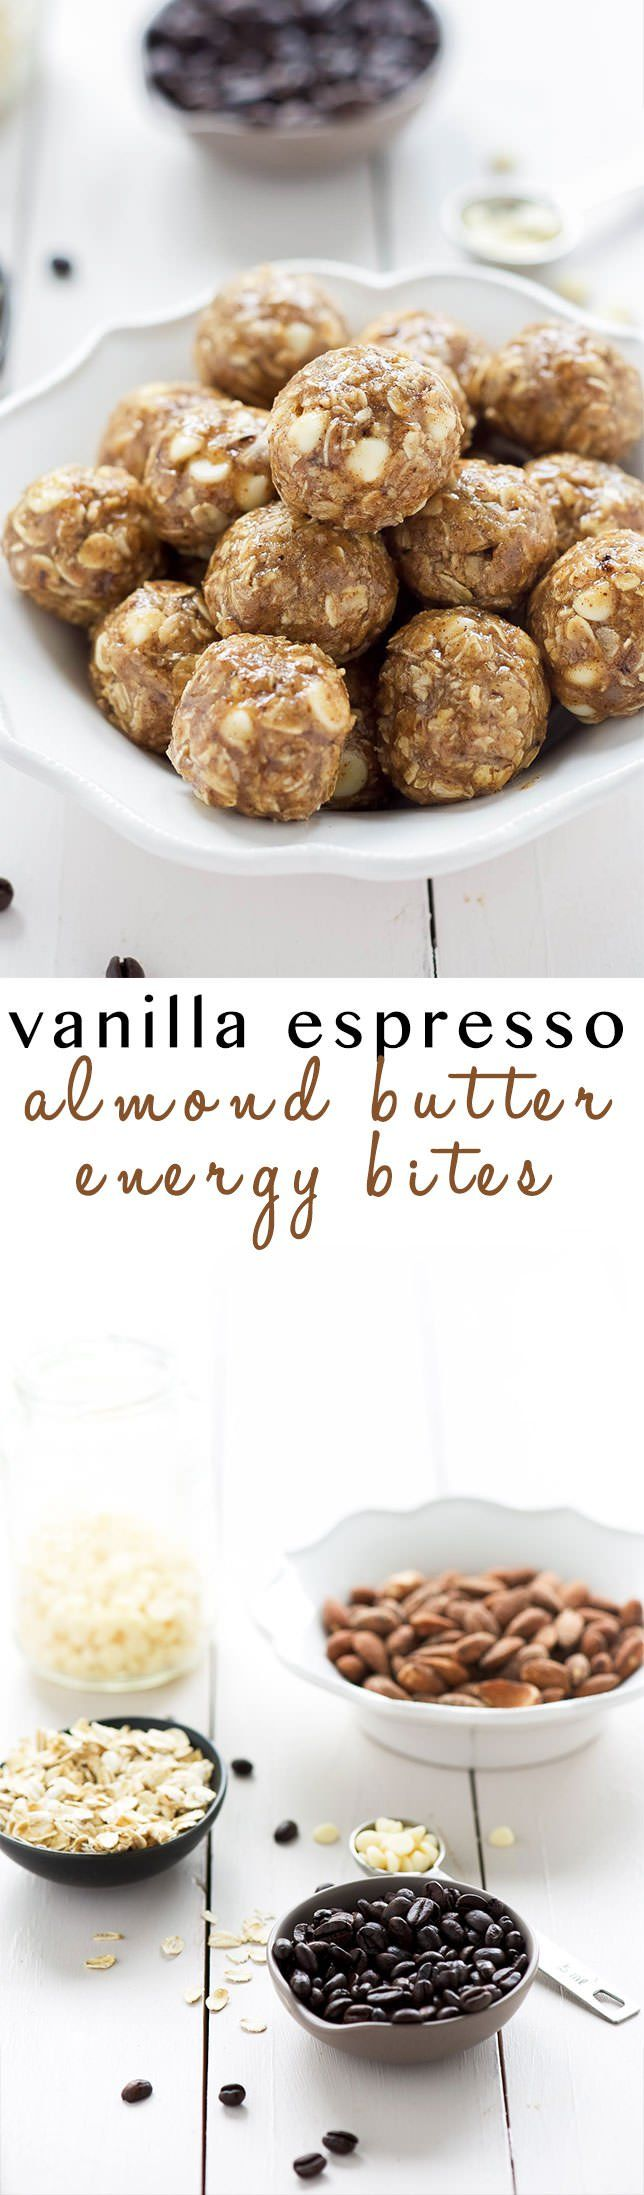 These Vanilla Espresso Almond Butter Energy Bites come in handy when you need…